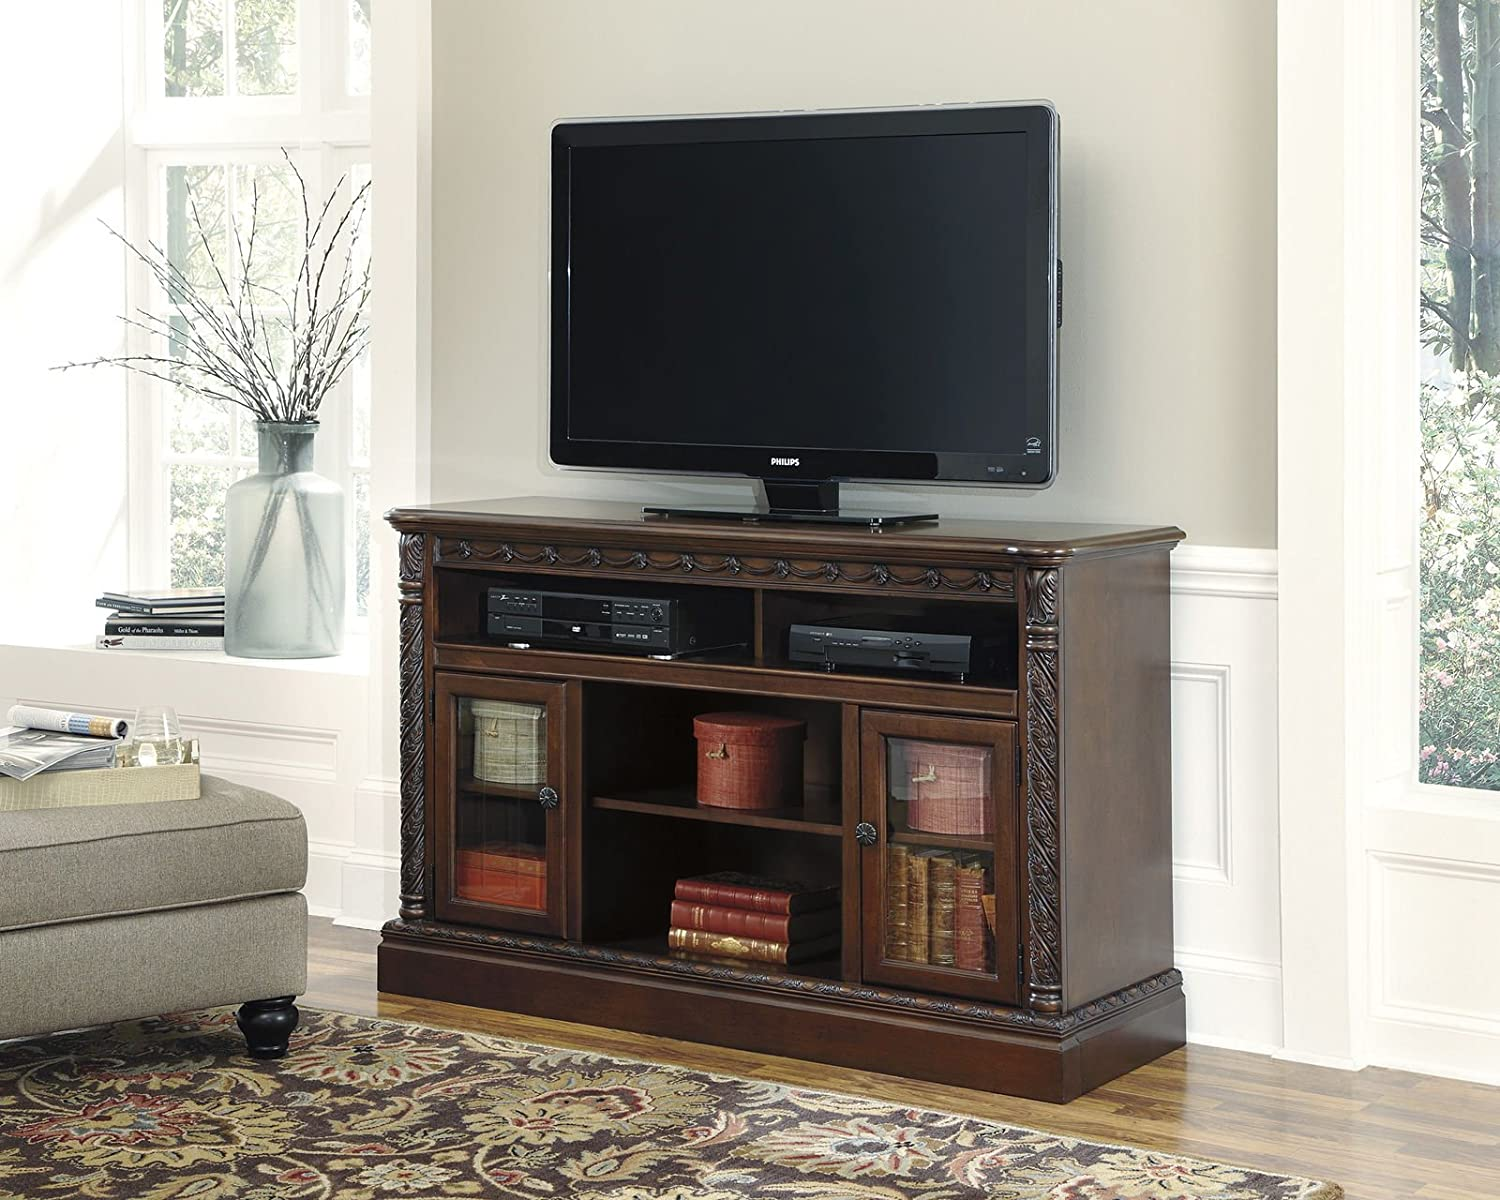 Buy North Shore W553-68 60 Large TV Stand with Fireplace and Audio Insert Compatibility 3 Adjustable Shelves 2 Doors and Carved Detailing in Dark Brown: Television Stands & Entertainment Centers - Amazon.com ? FREE DELIVERY possible on eligible purchases